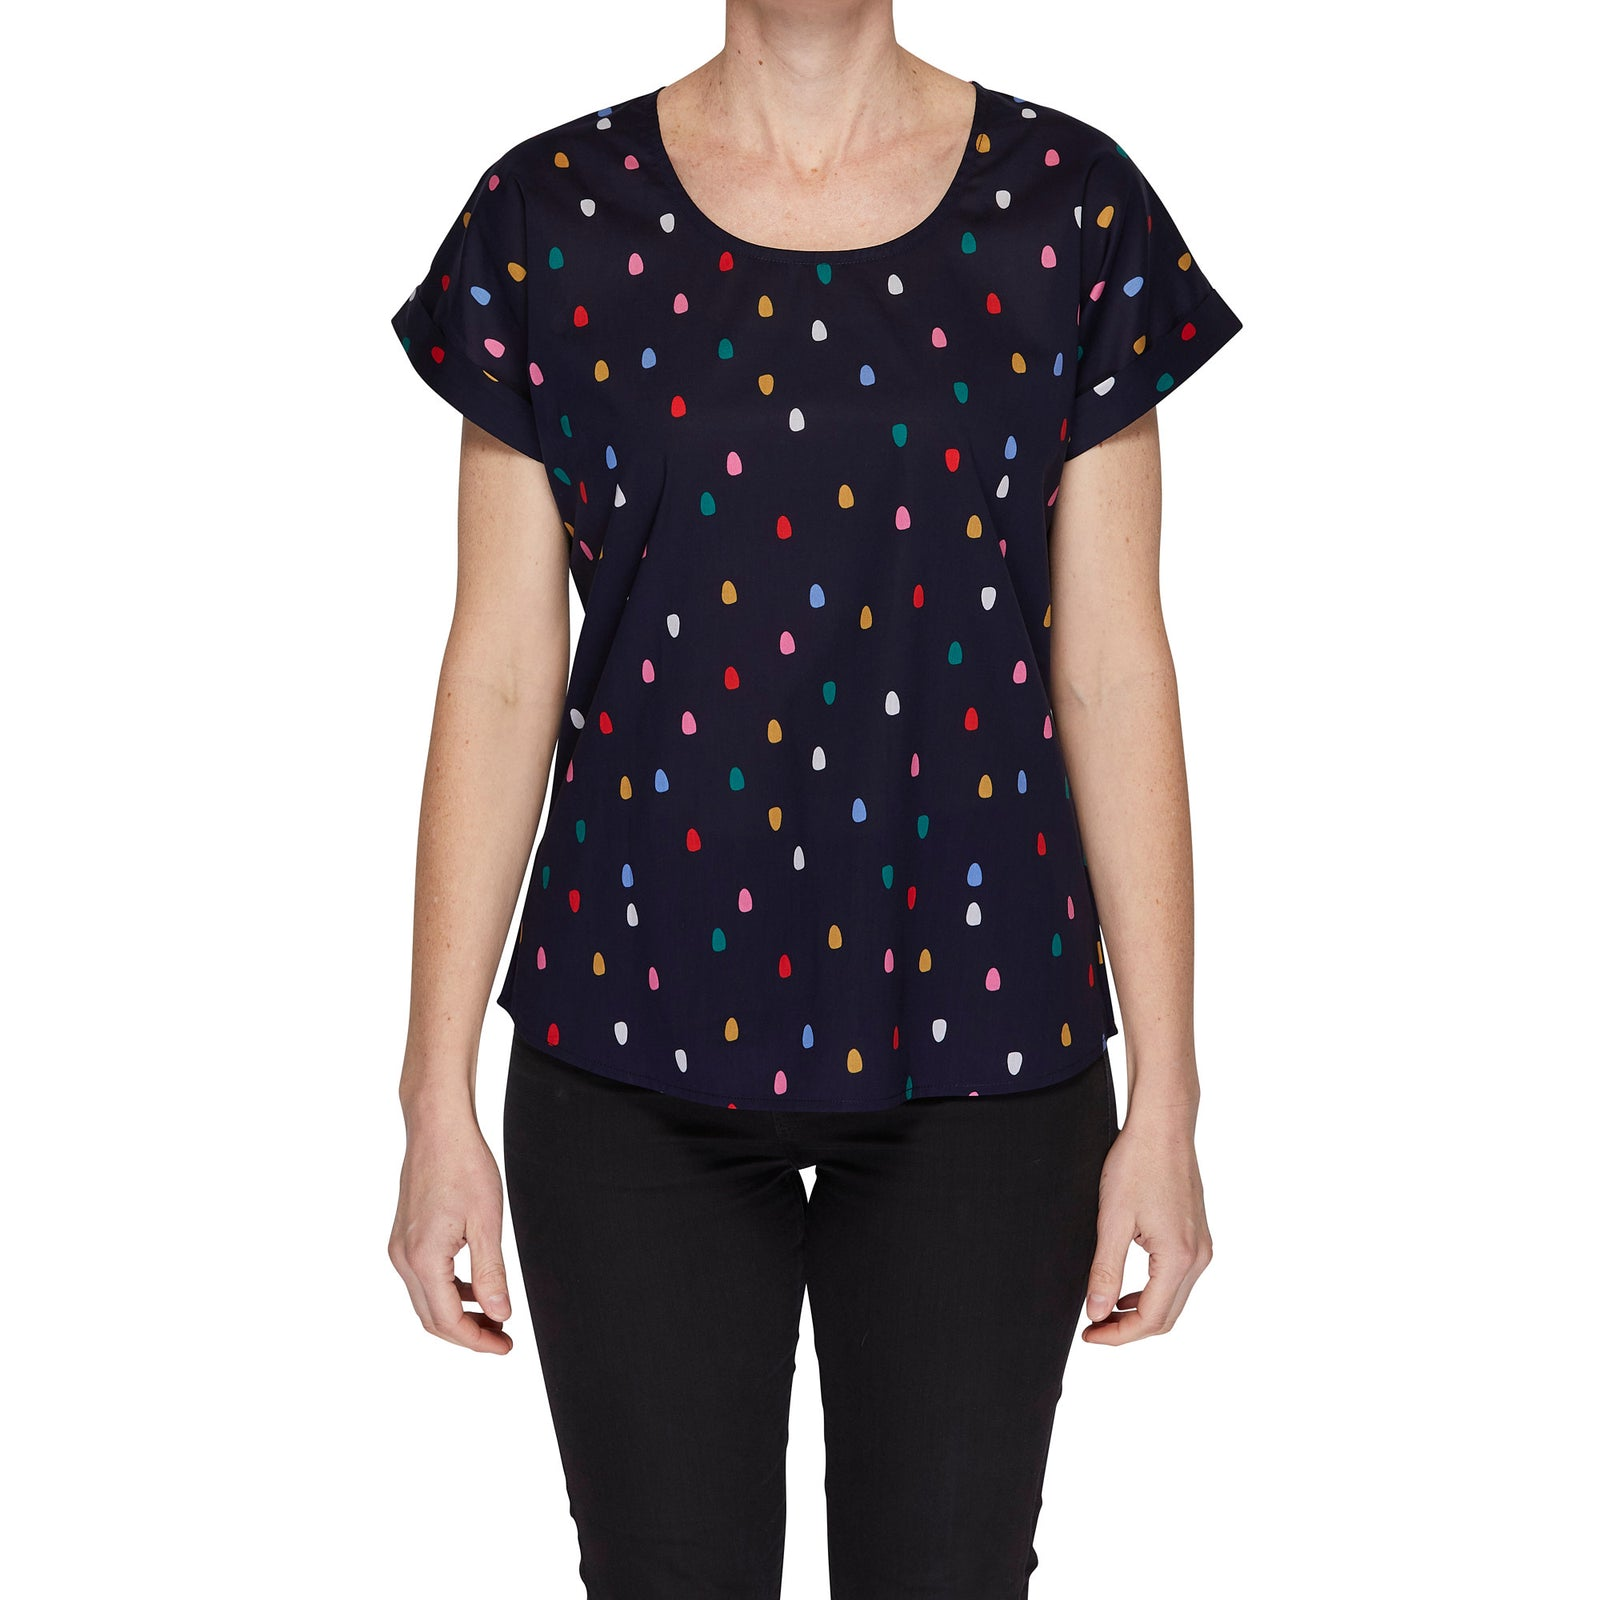 Box Tee Blouse - Spots